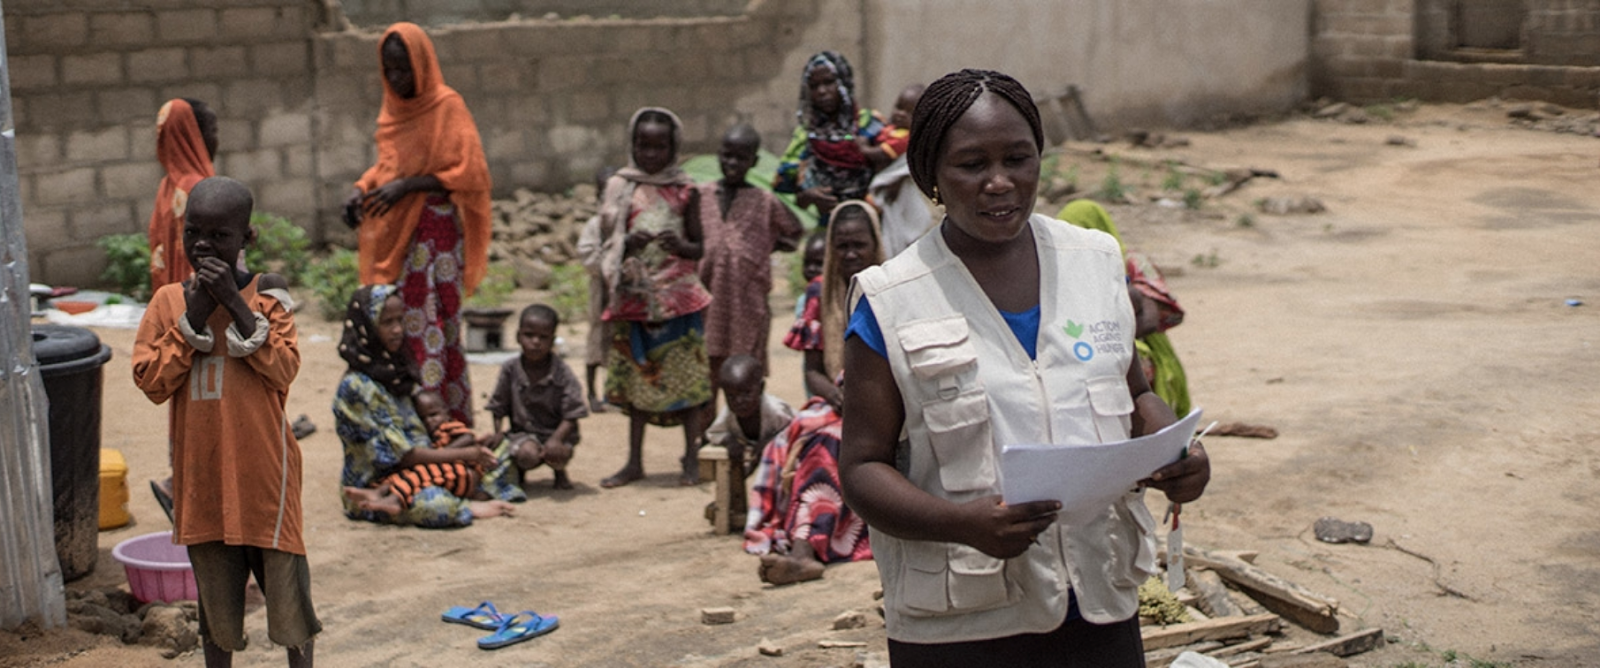 An Action Against Hunger volunteer works with malnourished children in Nigeria. Photo: Guy Calaf /  Action Against Hunger